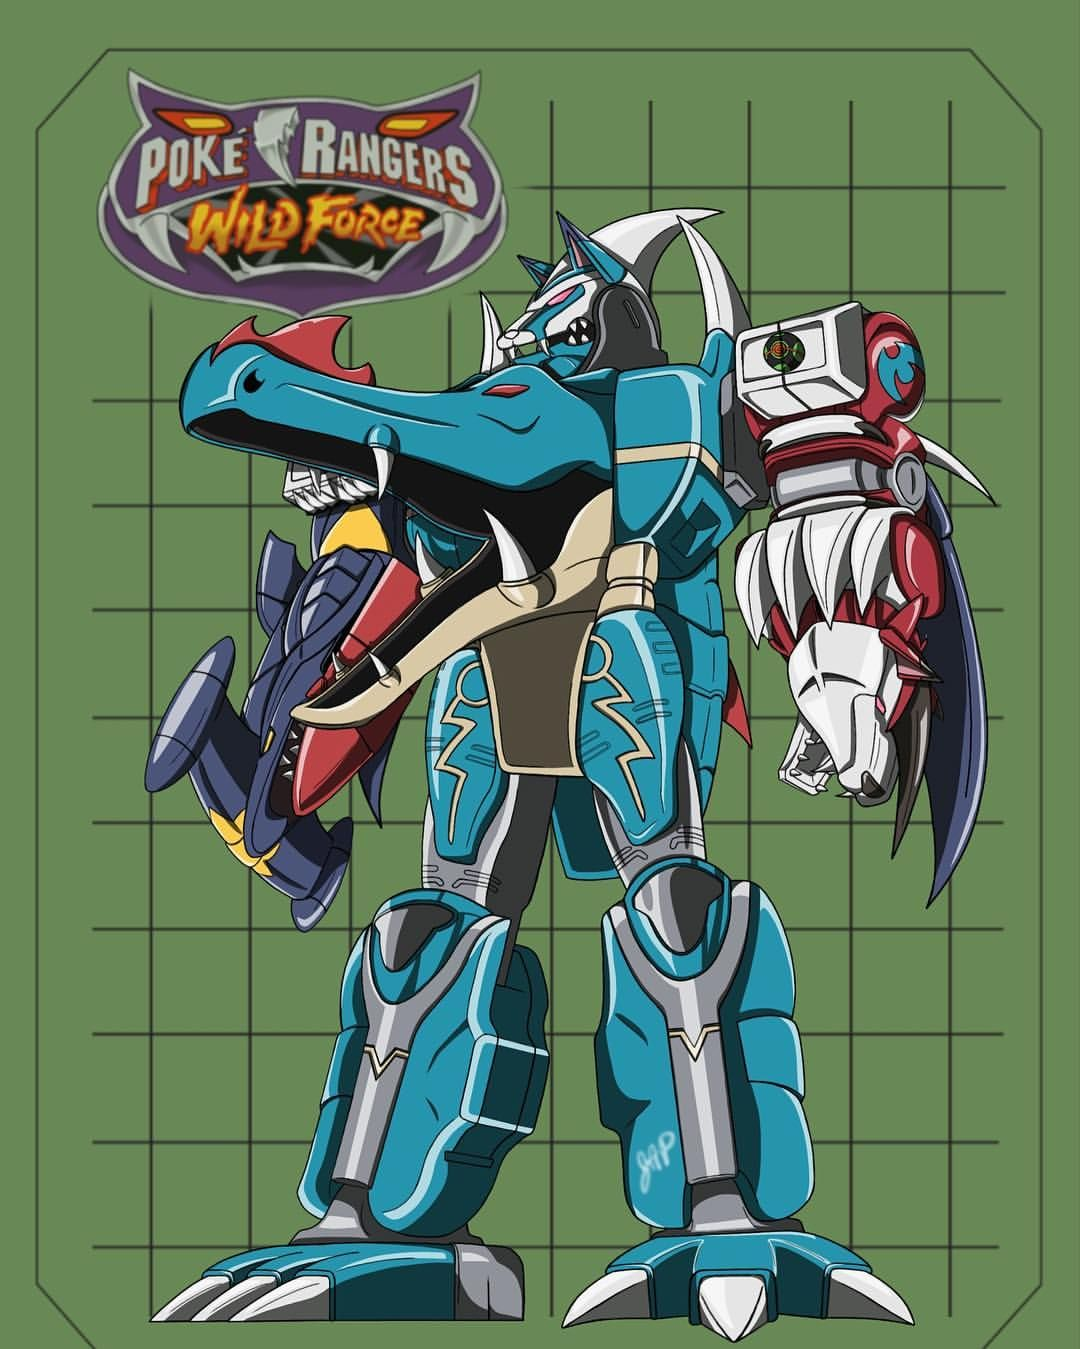 Predazord awaken continuing the tradition of megazordmonday predazord awaken continuing the tradition of megazordmonday heres the altavistaventures Choice Image